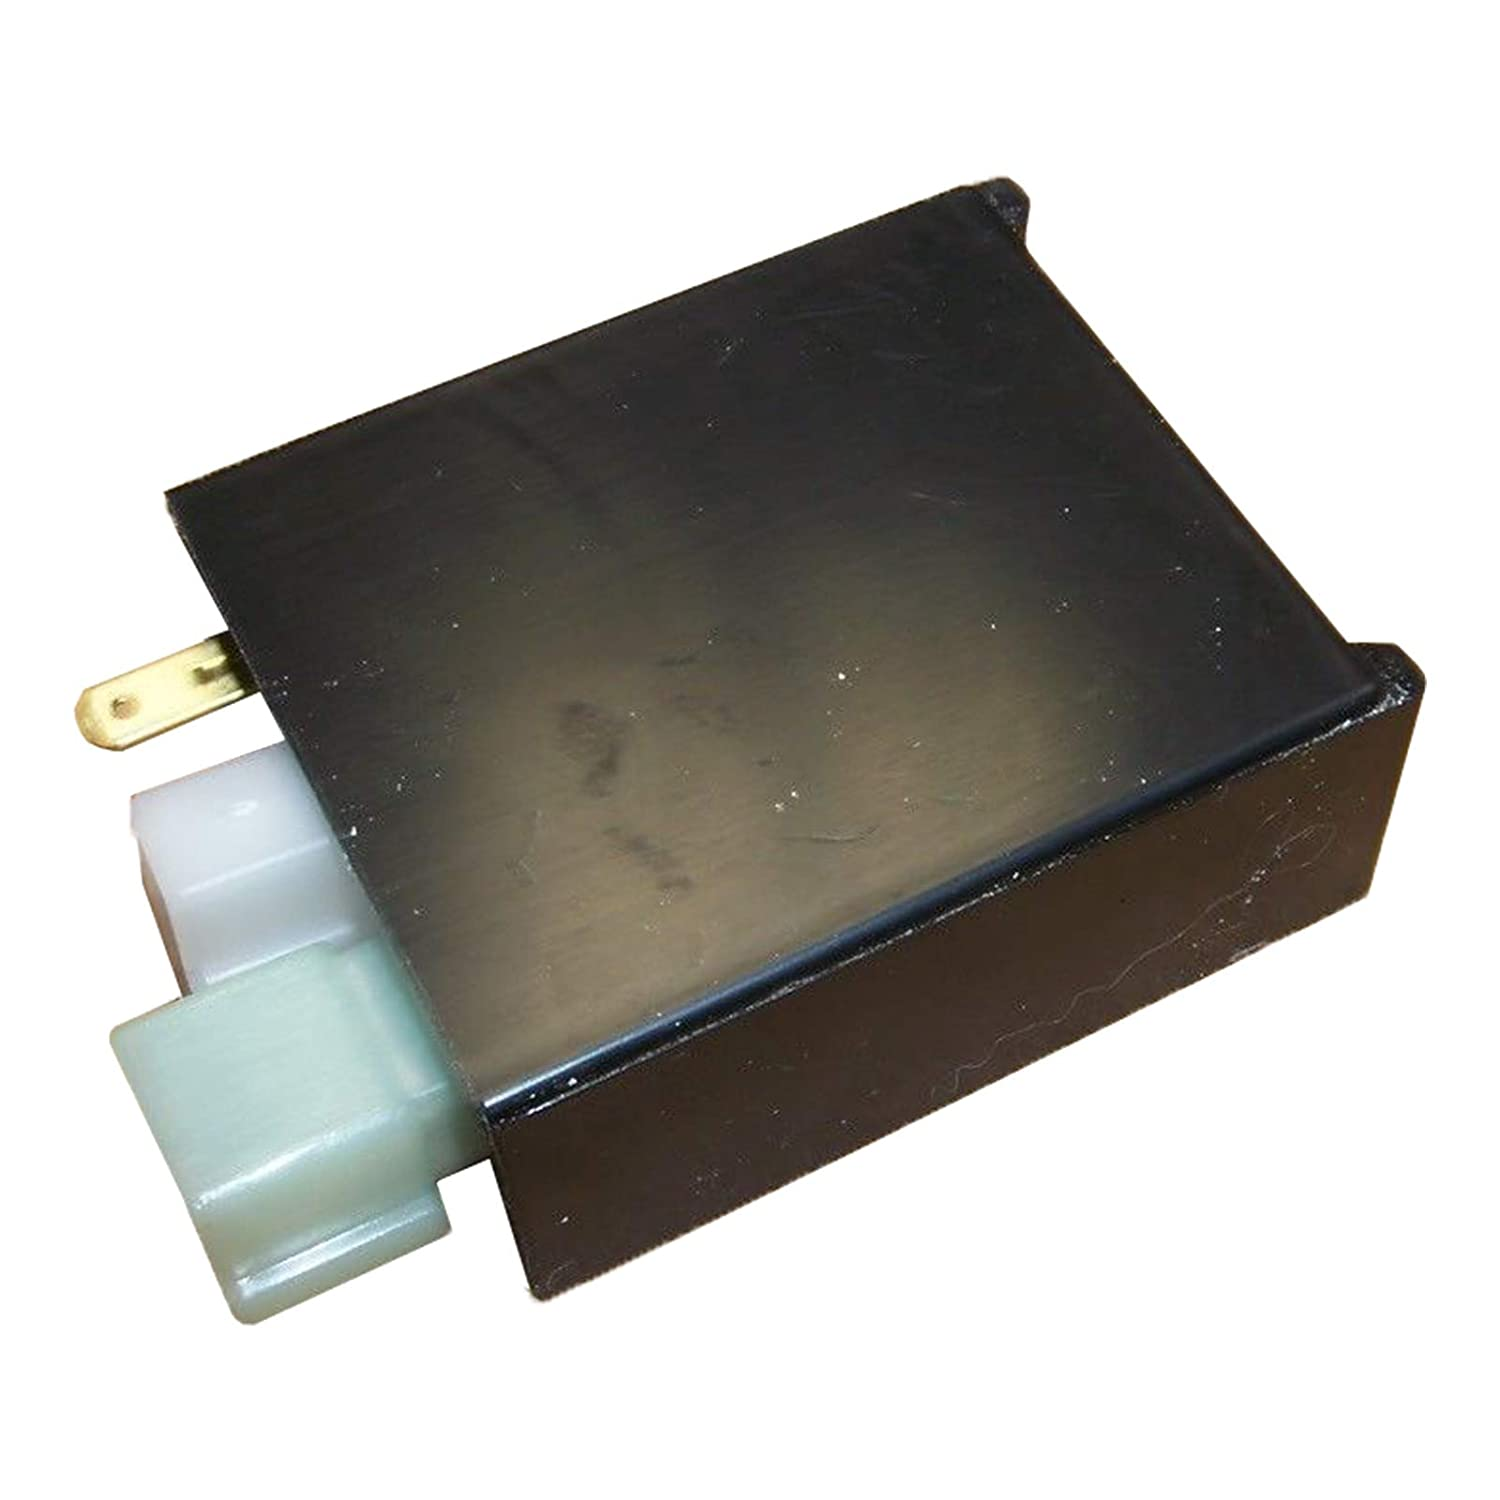 Solarhome New 38450-752-632 Combination Relay for Honda Tractors RT5000 RT5013